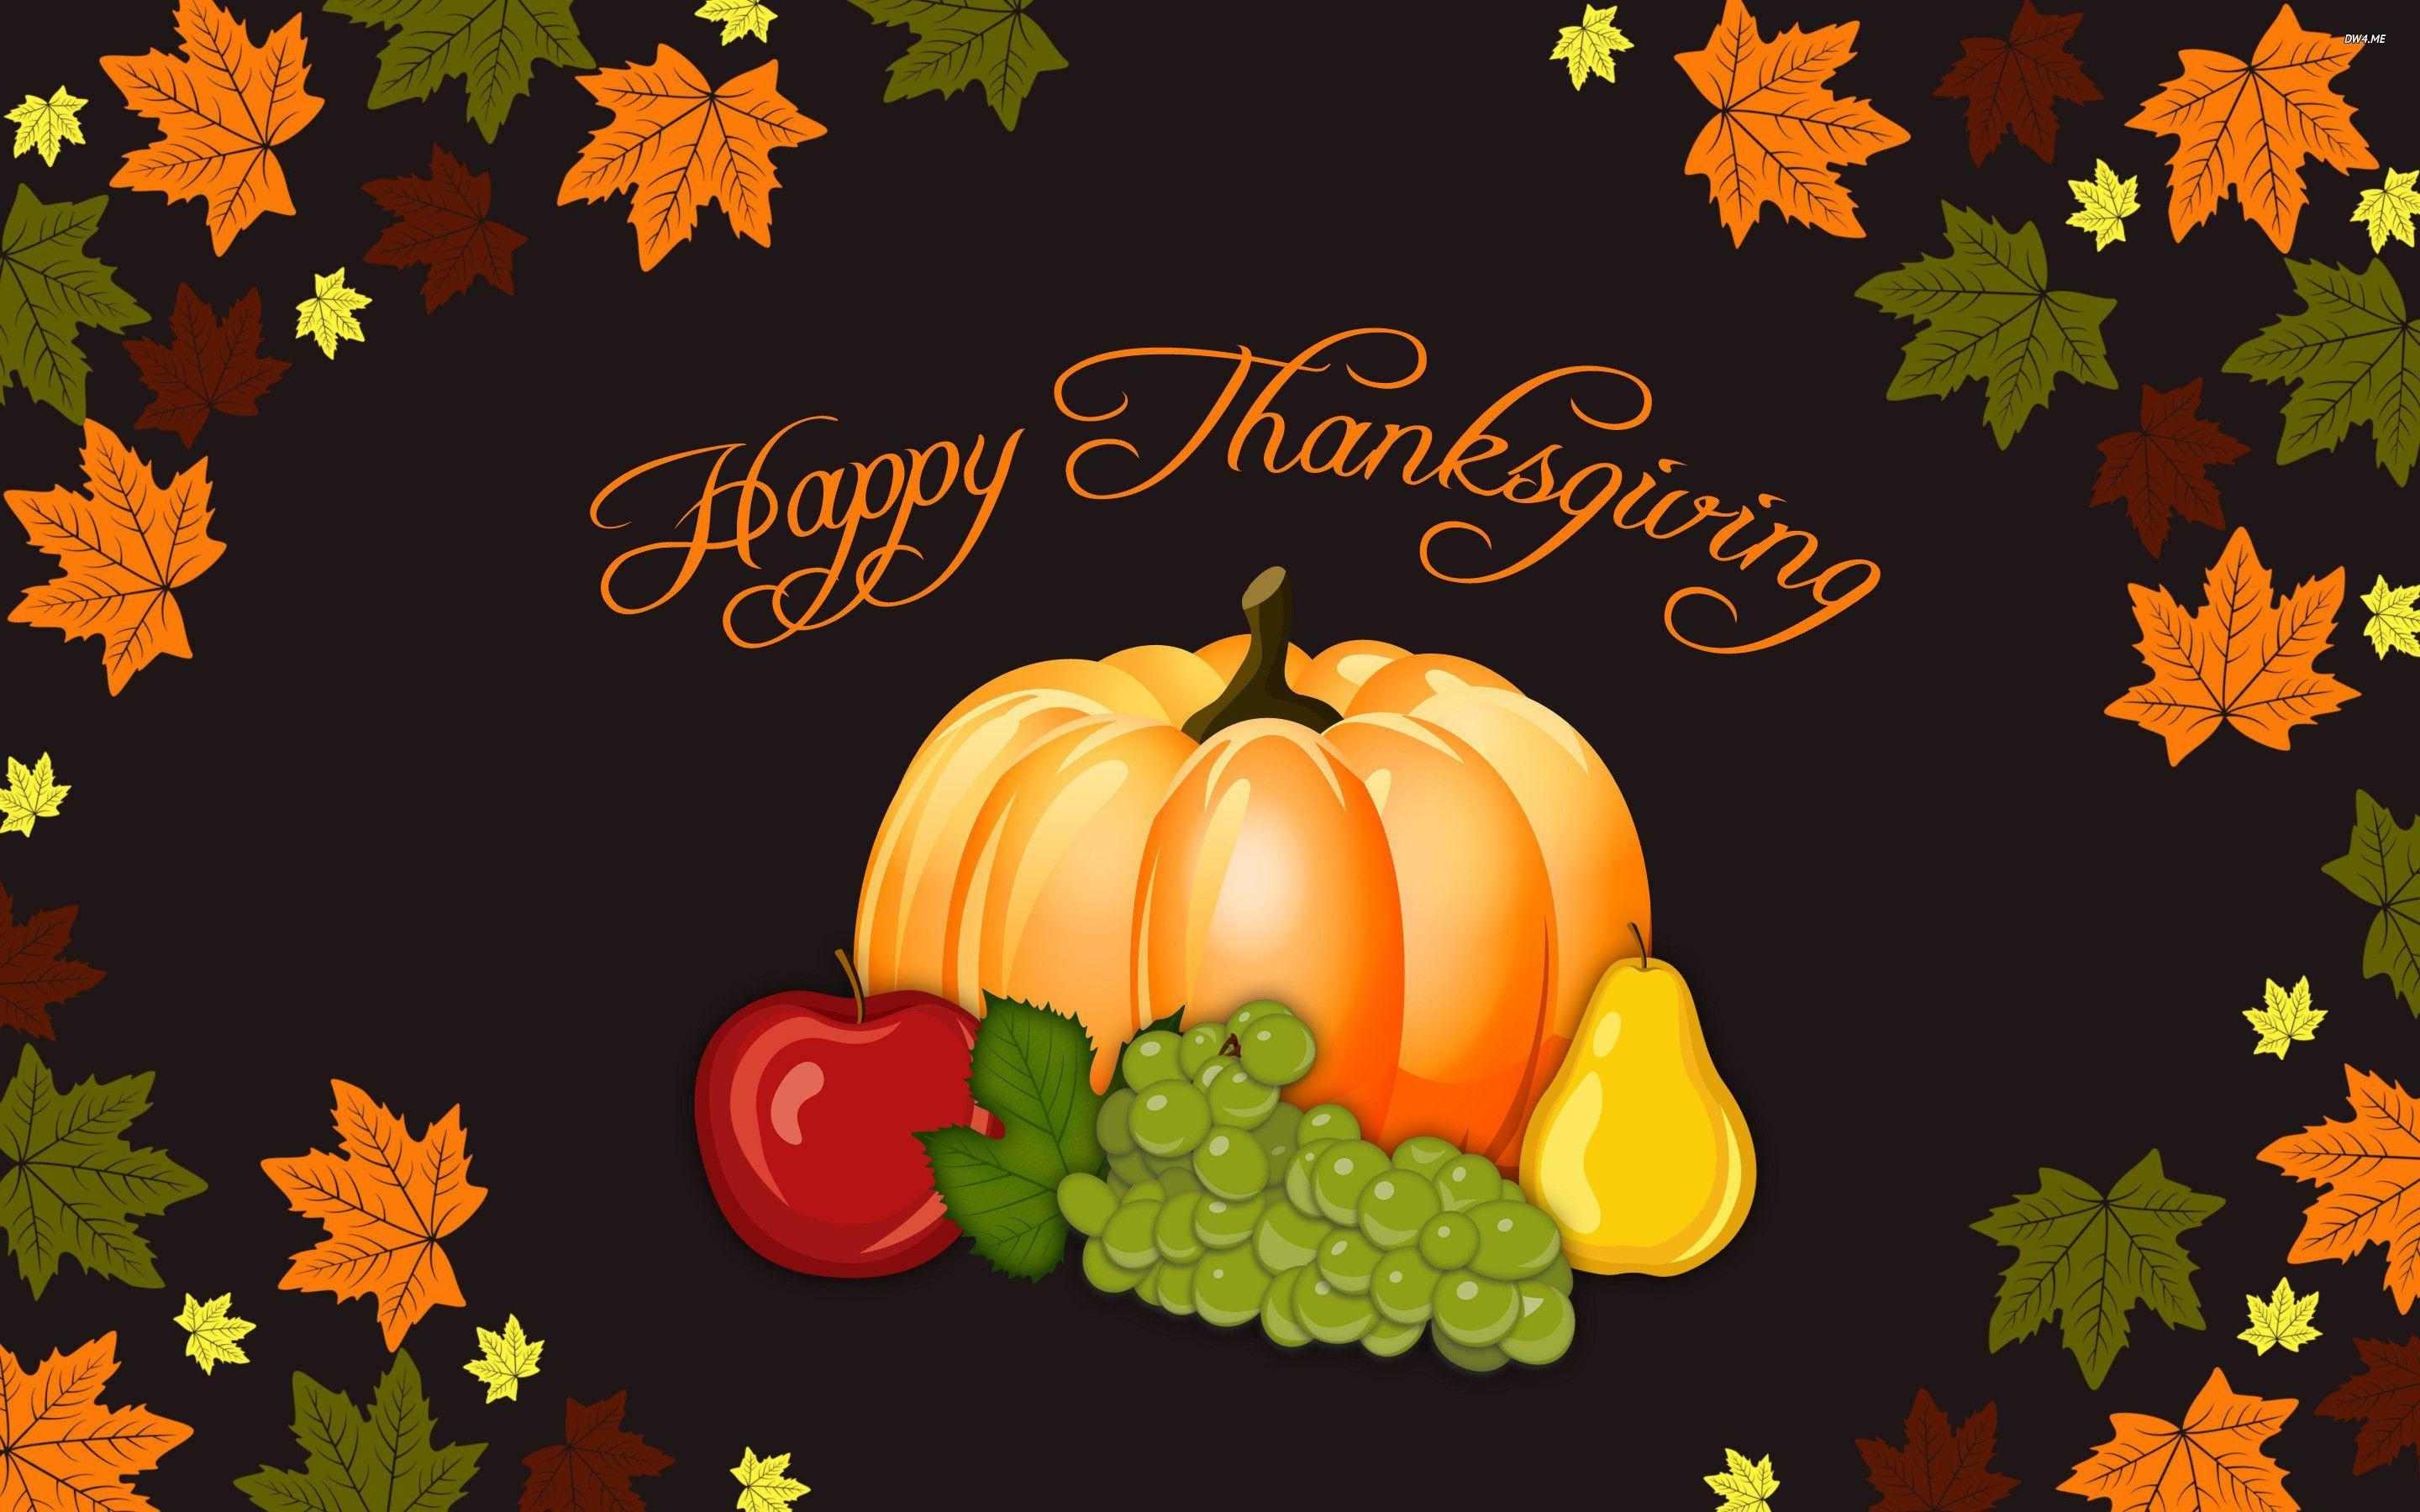 Thanksgiving wallpapers wallpaper cave - Thanksgiving screen backgrounds ...